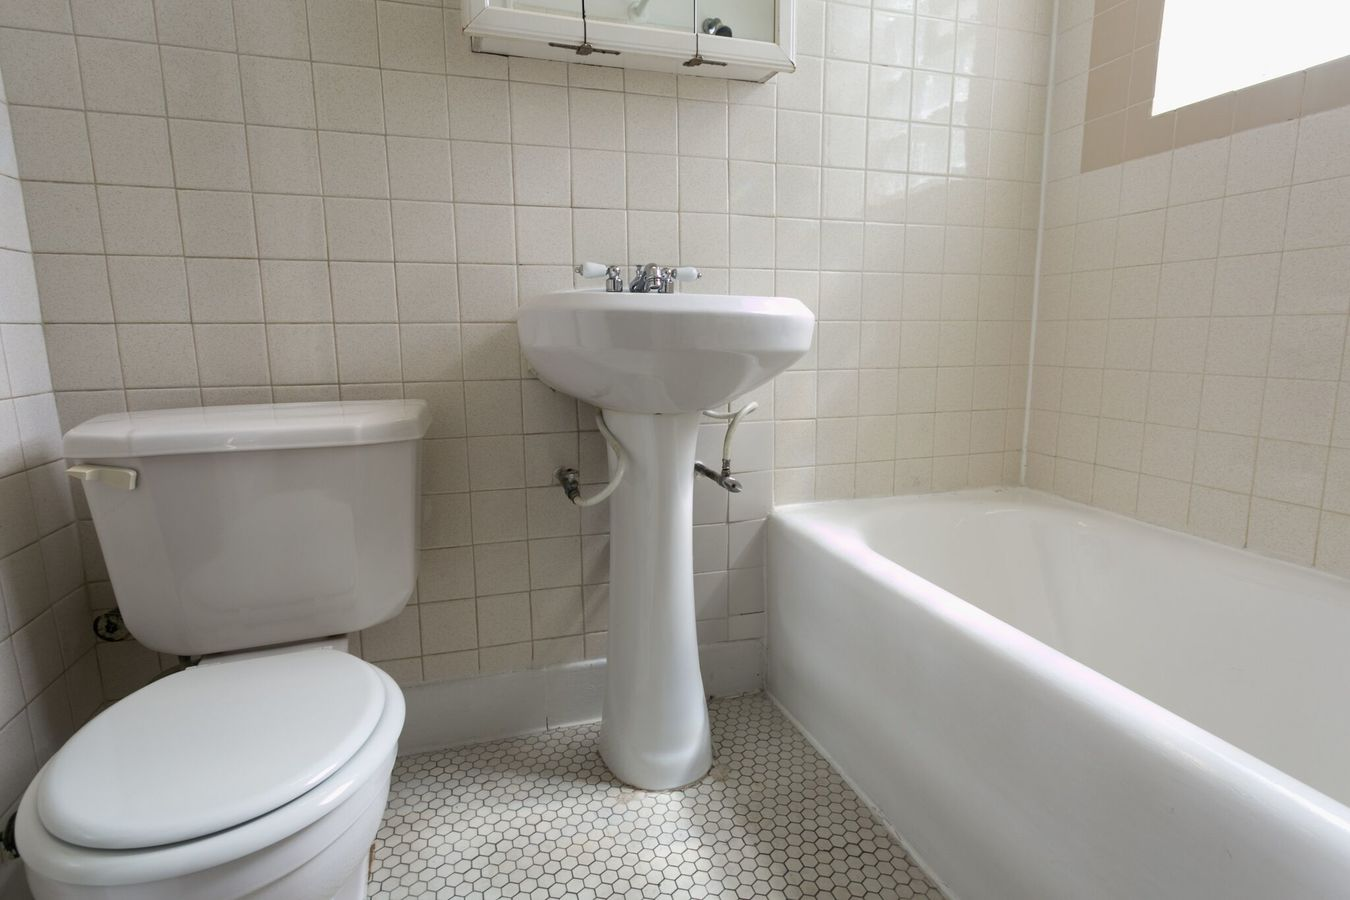 1 Bedroom 1 Bathroom Apartment for rent at 5415 S. Woodlawn Avenue in Chicago, IL